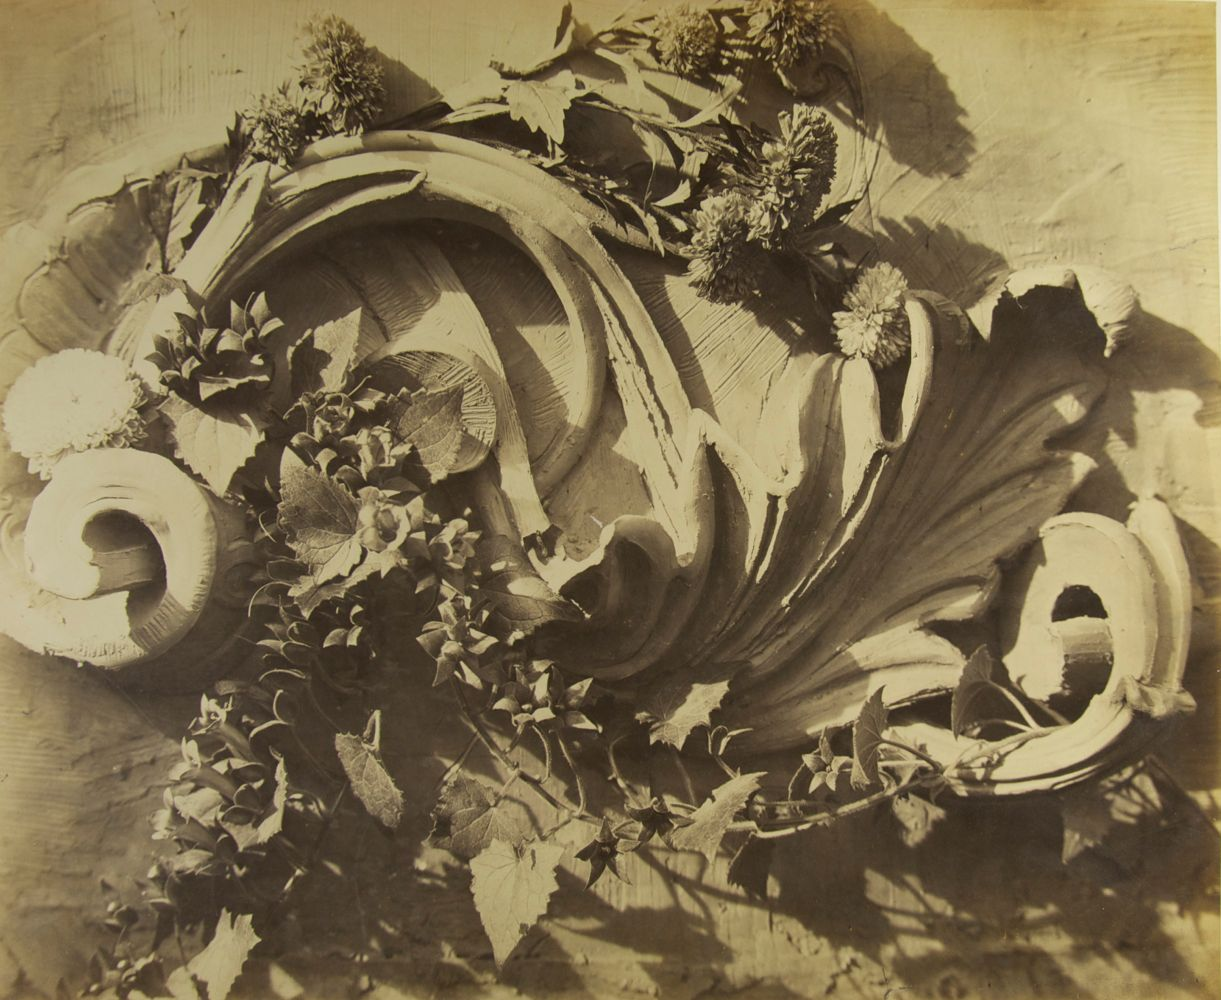 """Charles Hippolyte AUBRY (French, 1811-1877) Decorative motifs, circa 1865 Albumen print from a collodion negative 37.4 x 46.2 cm mounted on 47.0 x 55.0 cm paper  Blue """"ch. aubry"""" signature stamp, blue oval """"PHOTOGRAPHIE, 8, RUE DE LA REINE BLANCHE"""" with logo stamp and circular blindstamp """"MEDAILLE D'OR / À CH. AUBRY / 1864"""""""